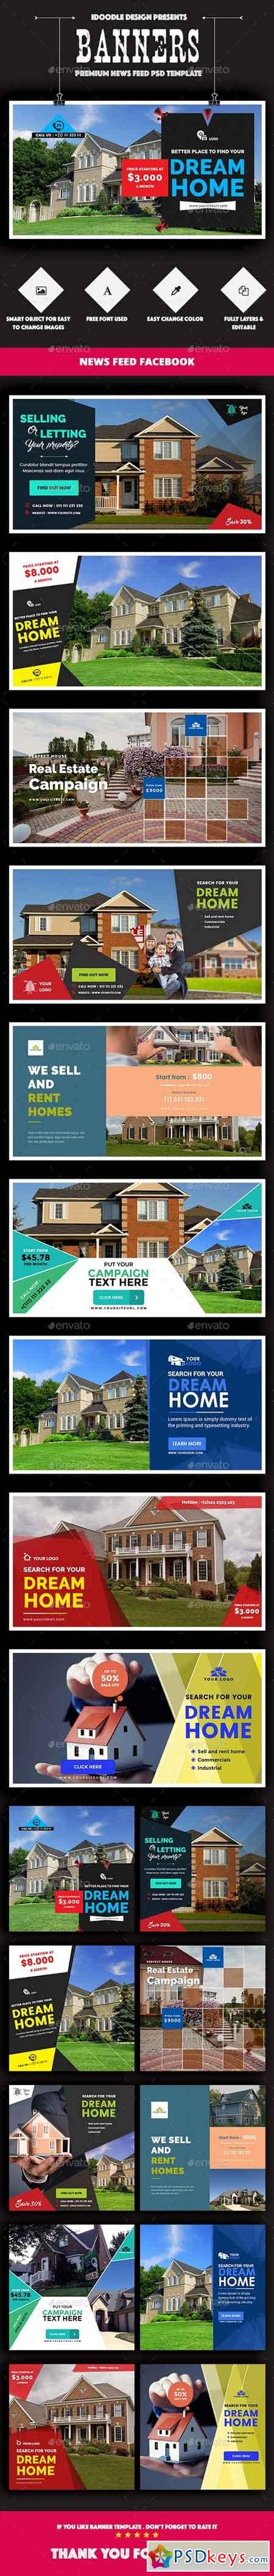 Facebook Real Estate Banners Ads - 20 PSD [2 Size Each] 16136352